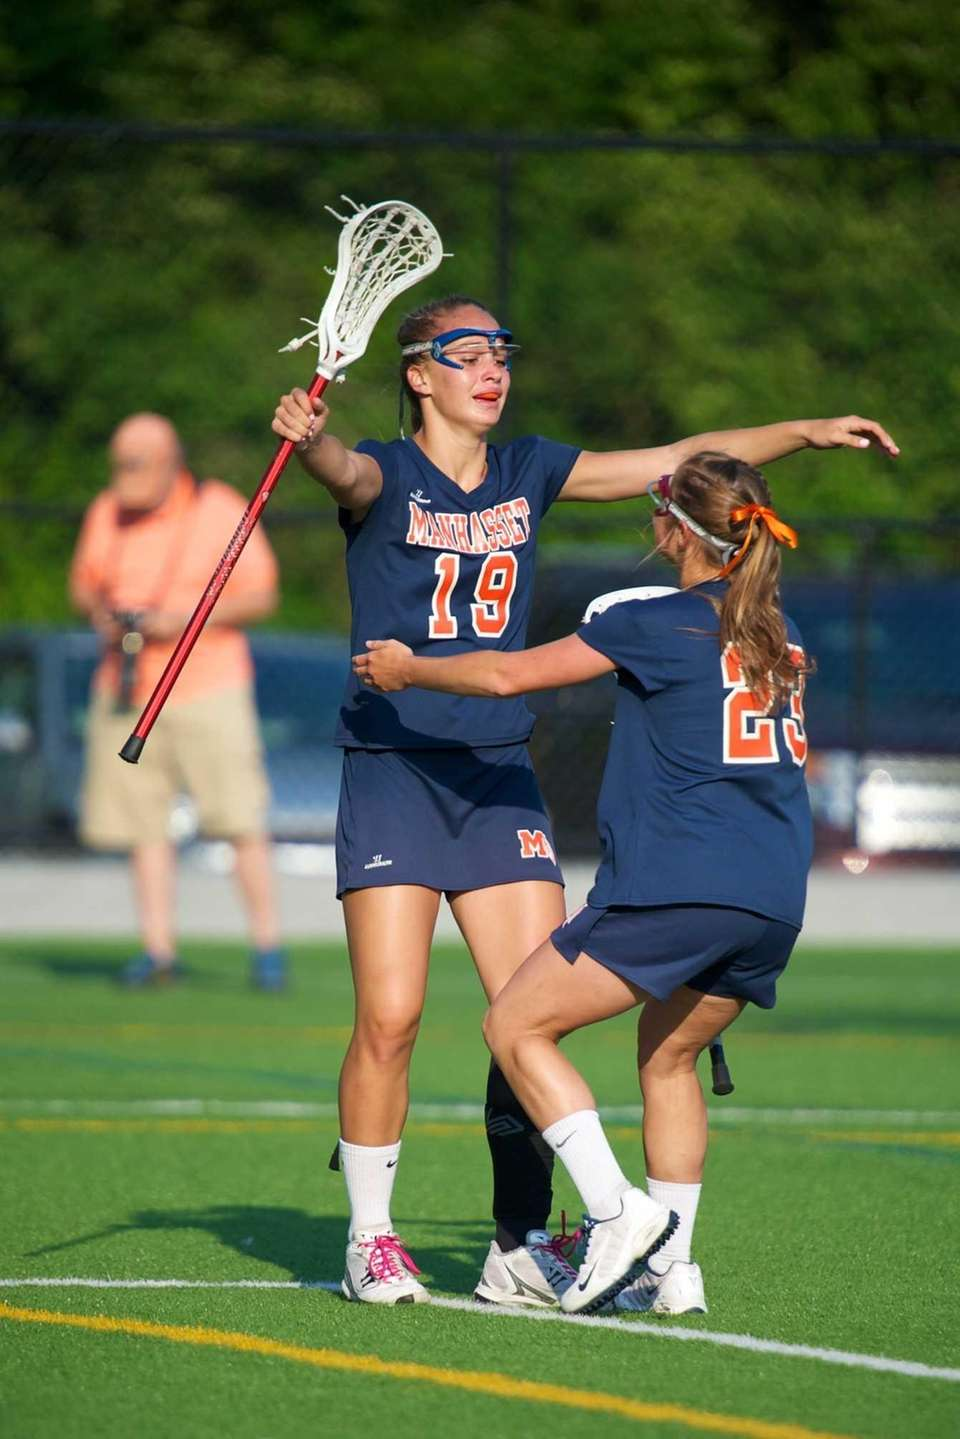 Manhasset's Kathryn Hallet celebrates with teammate Natalie Stefan.